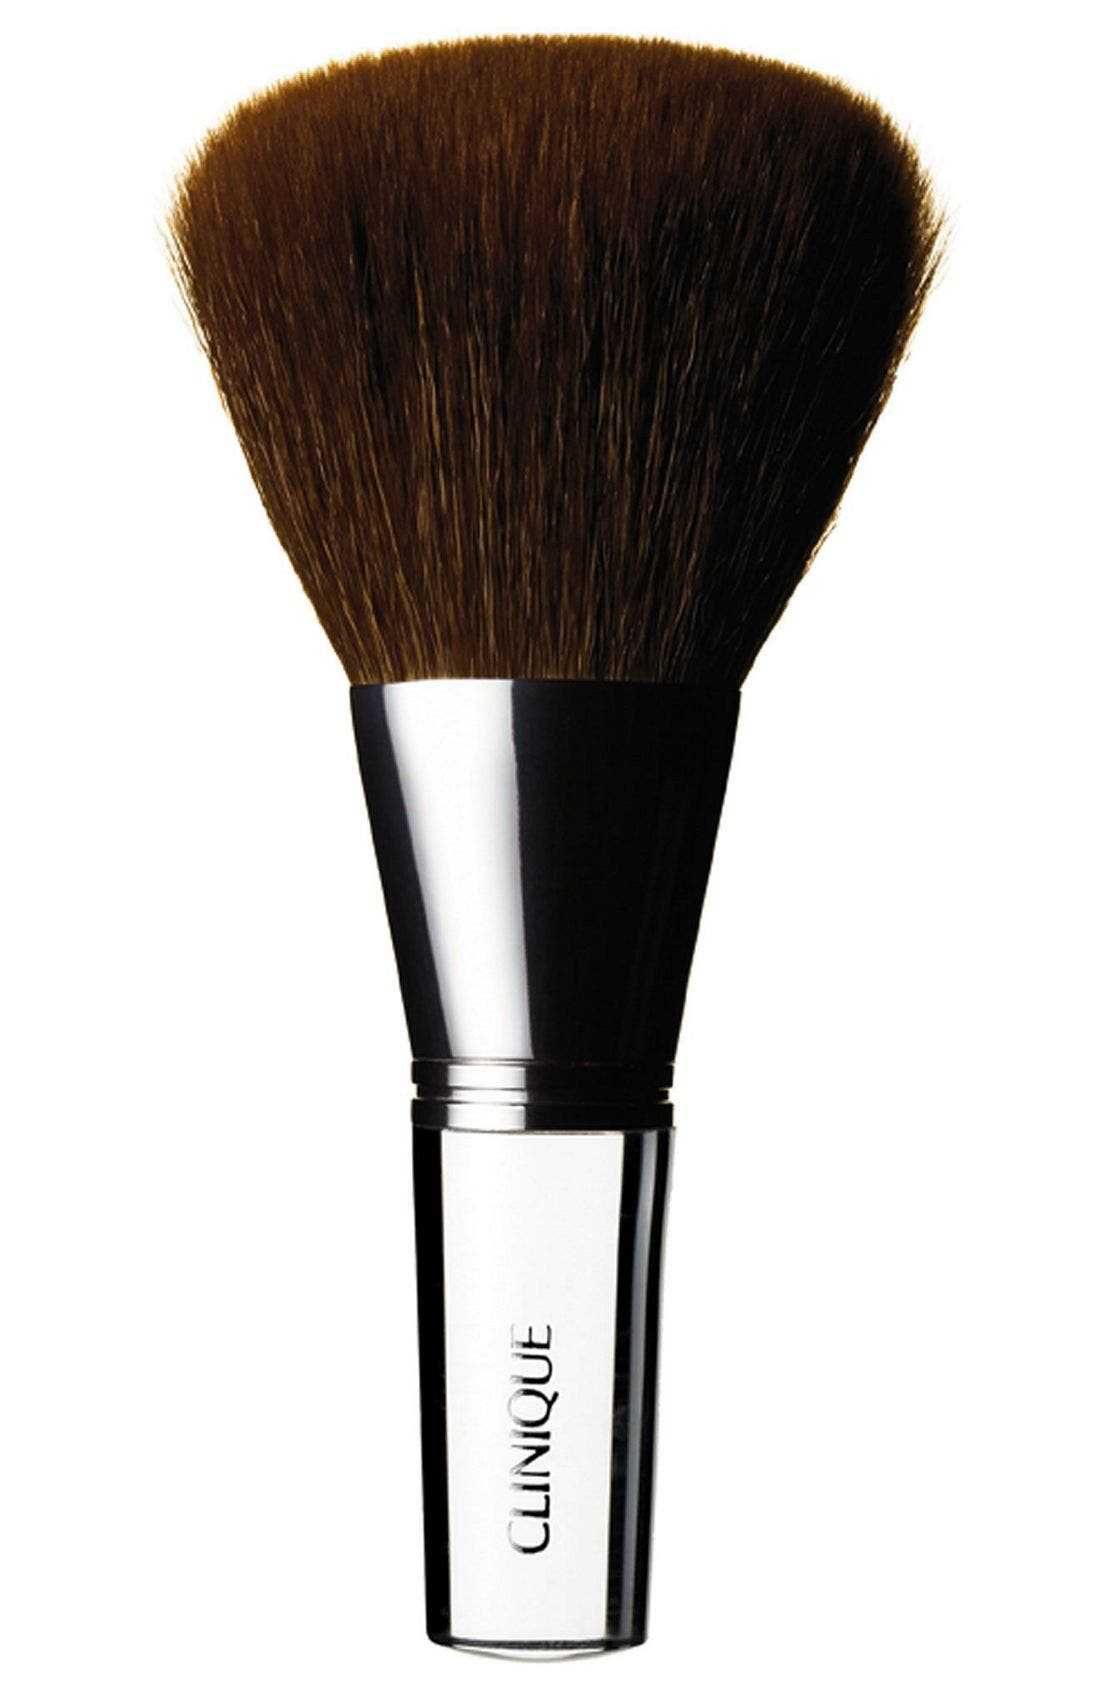 Bronzer/Blender Brush,                             Main thumbnail 1, color,                             NO COLOR